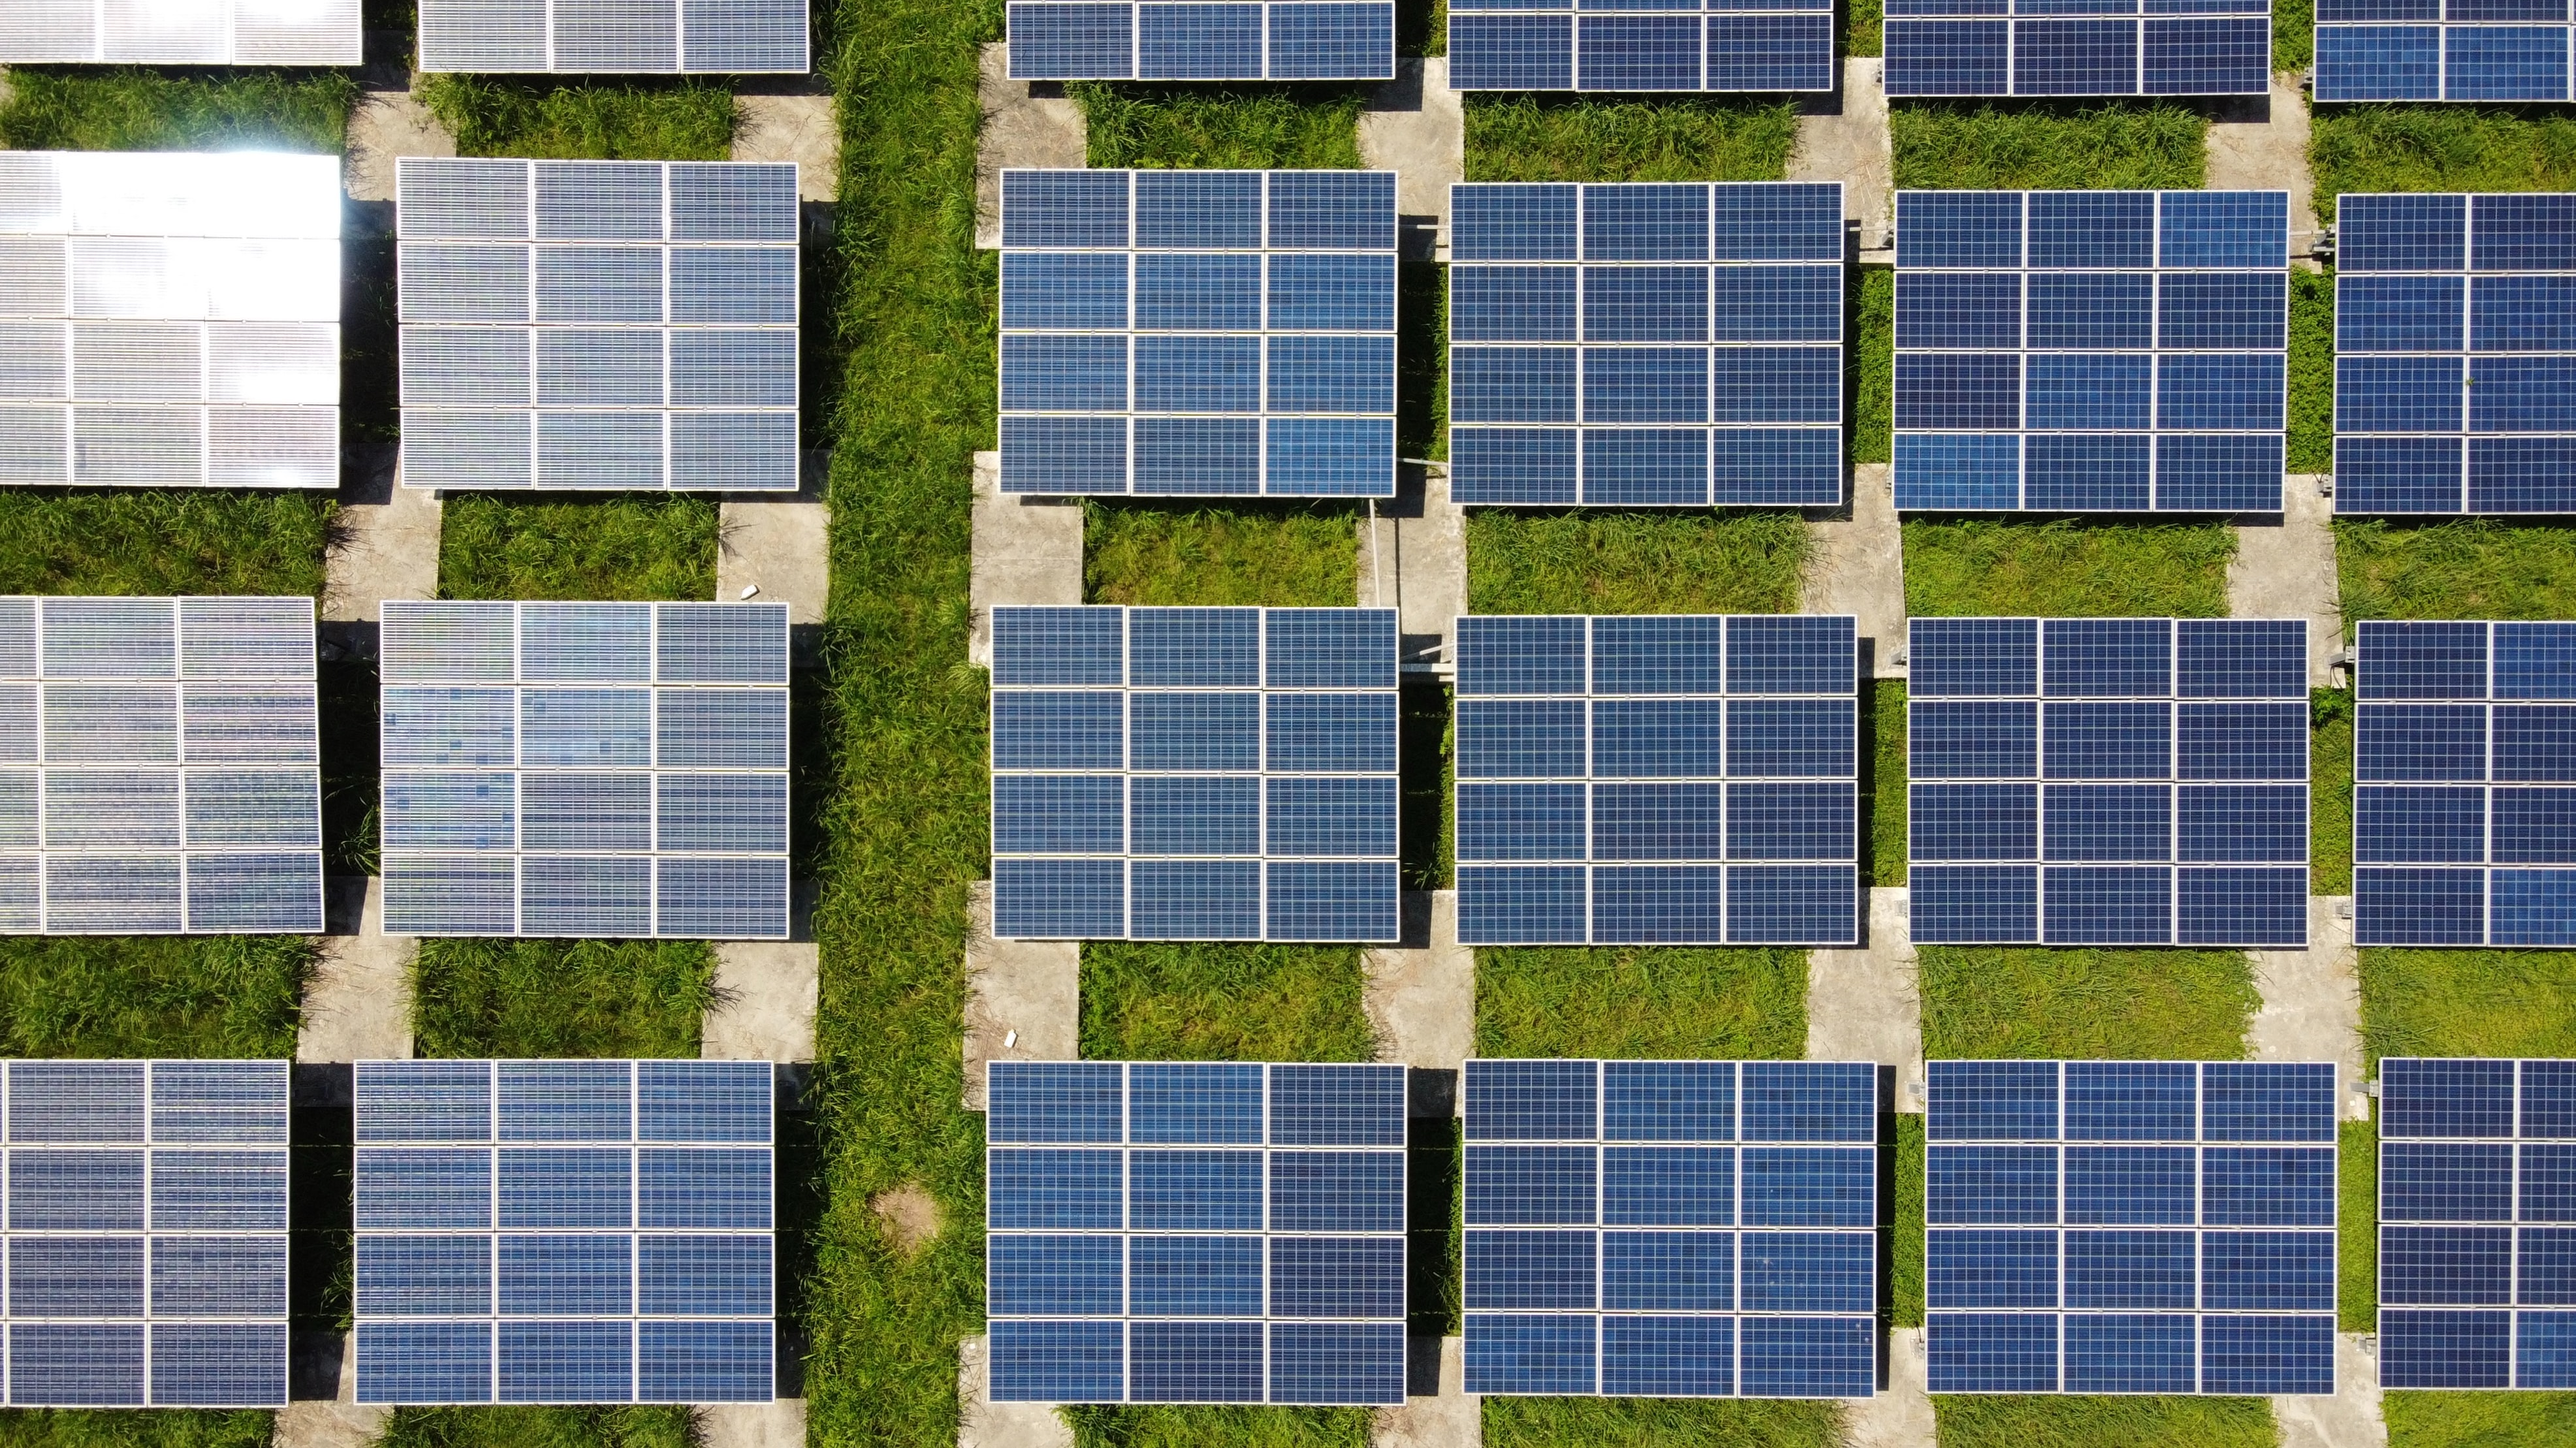 What is ESG investing? Solar Panels and Green Energy